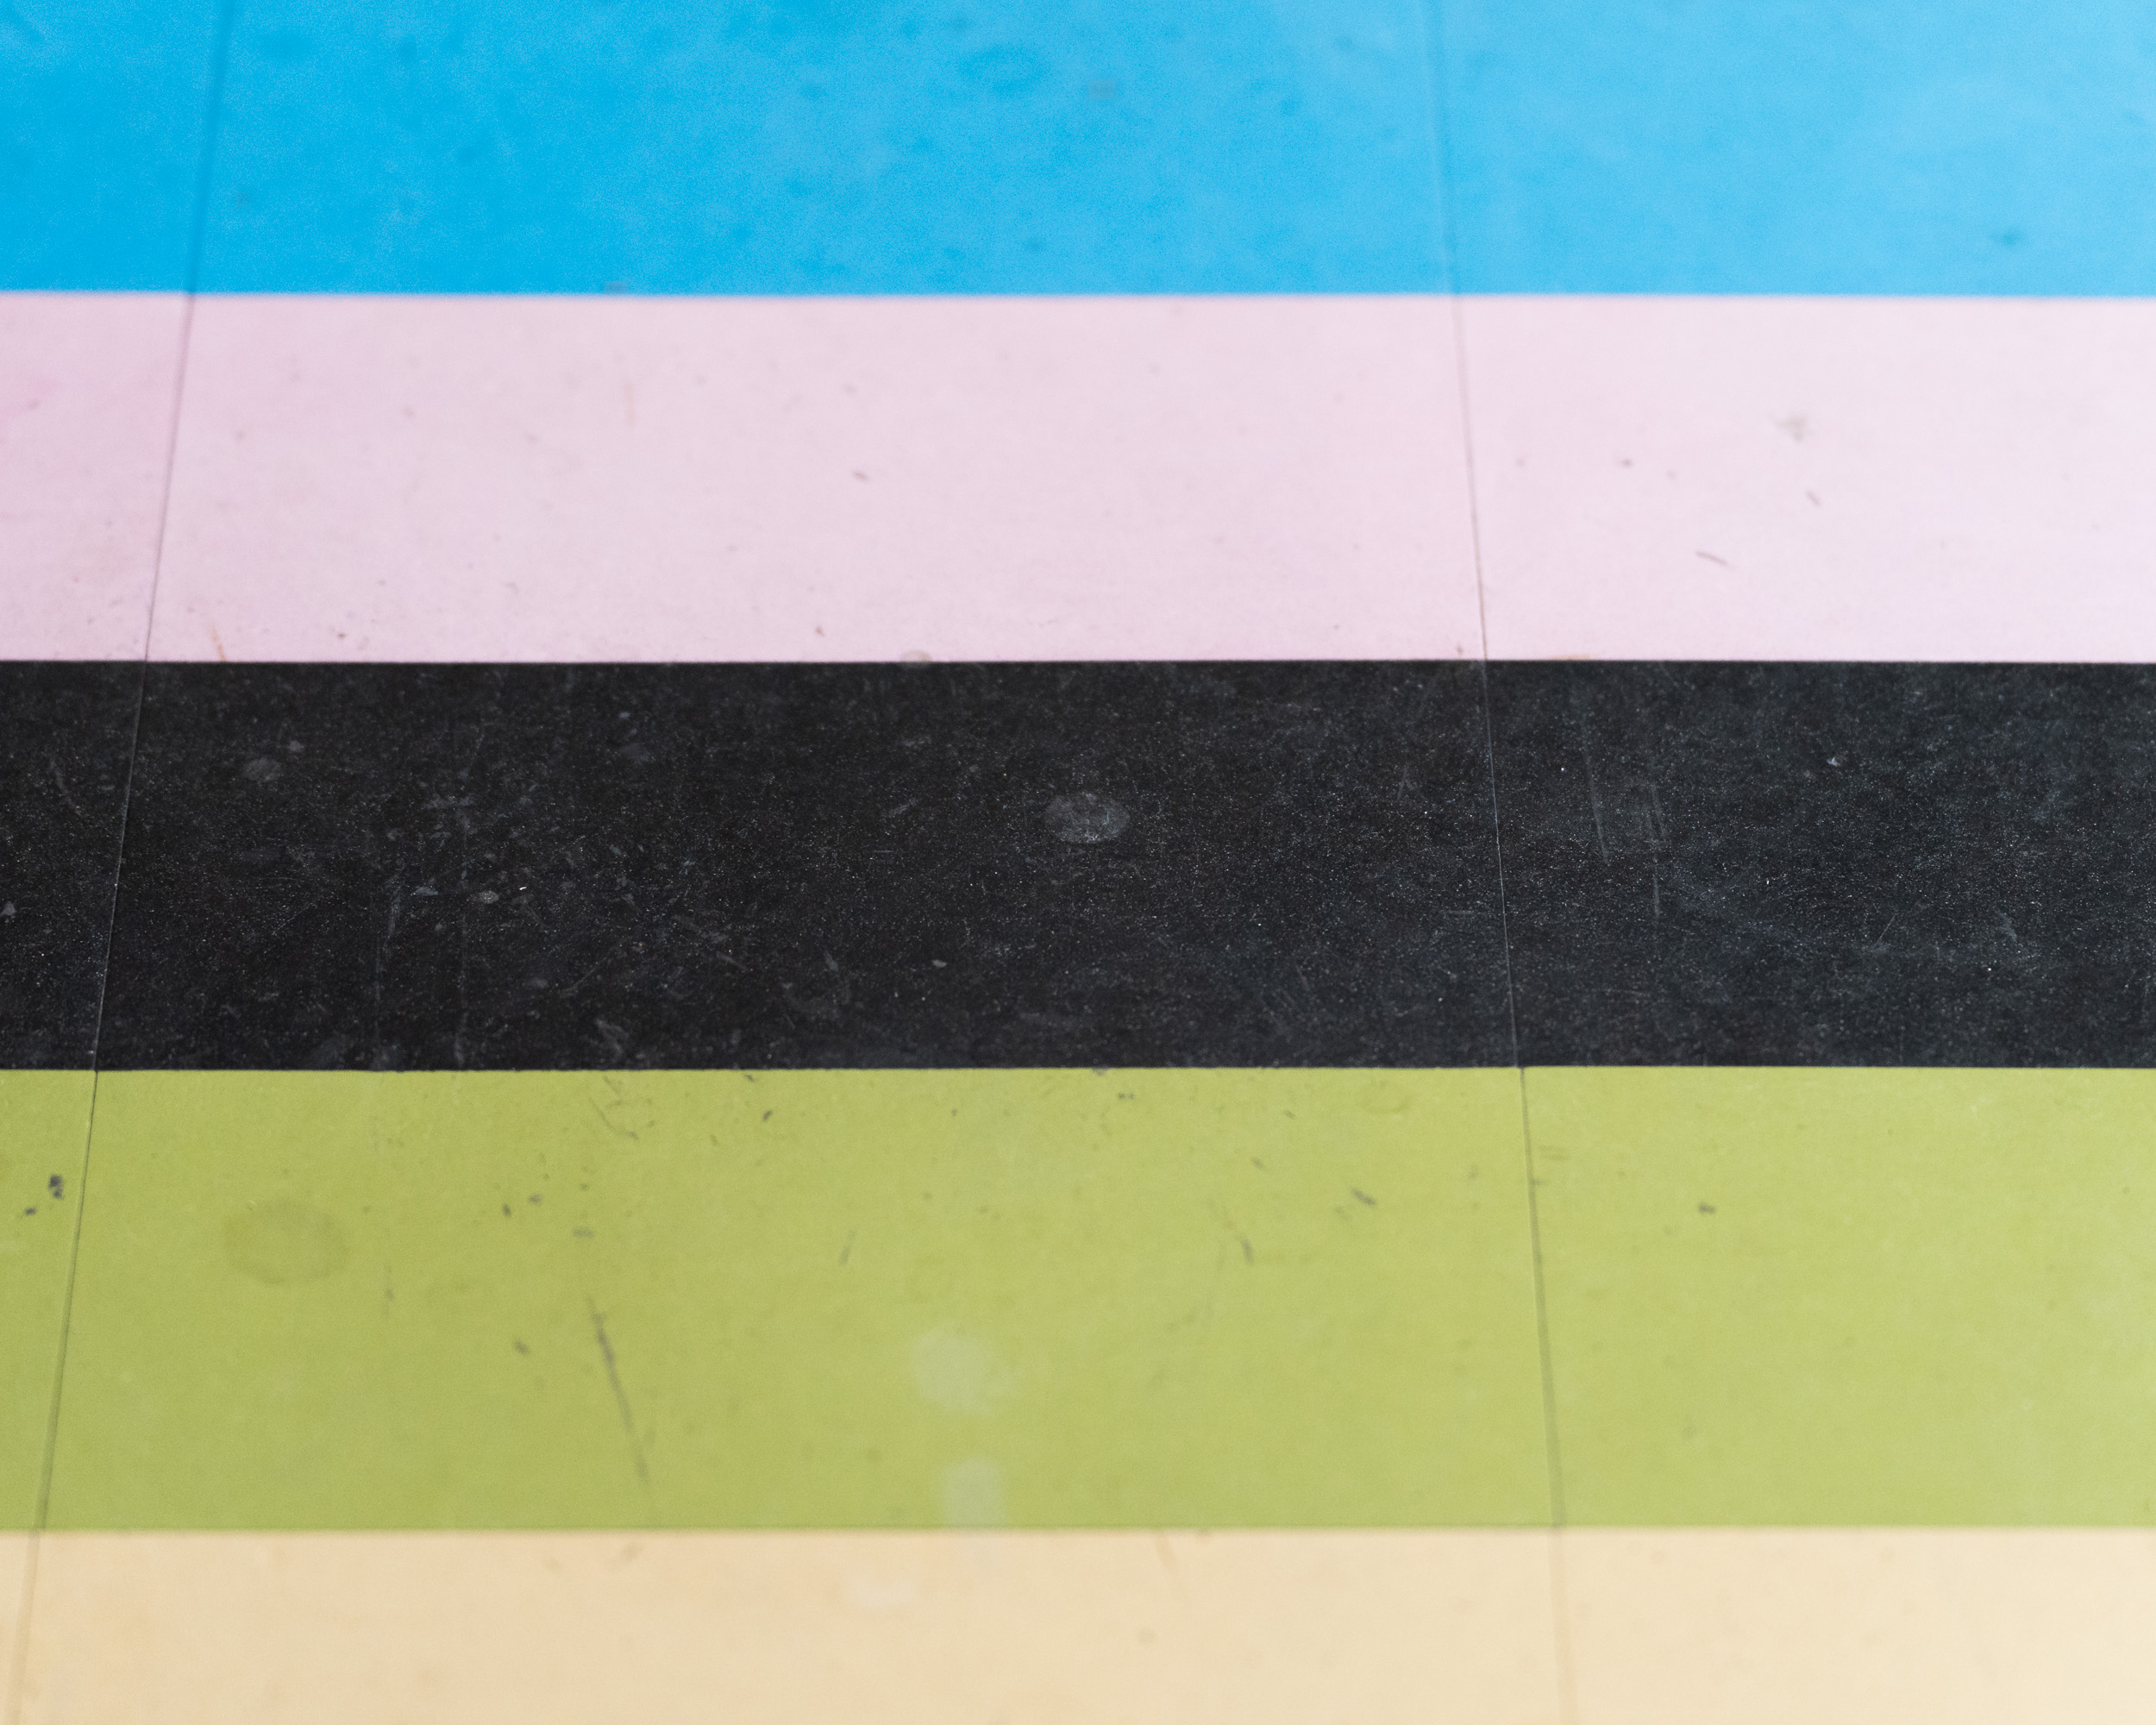 A black, green, pink and blue line on the floor